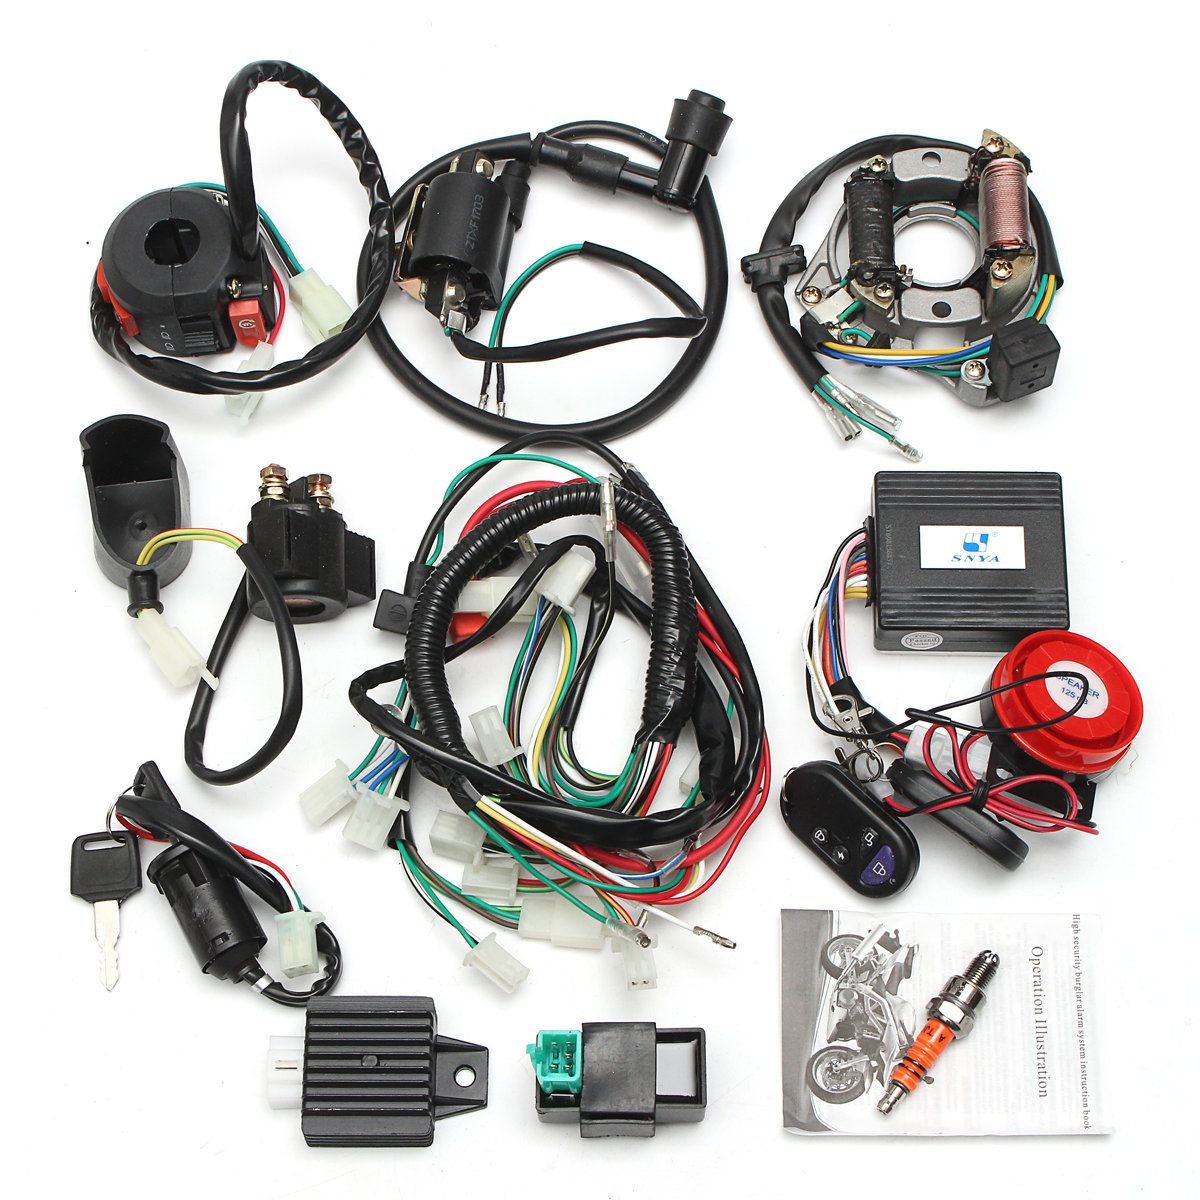 alarm system cdi wiring harness remote start switch high security for electric [ 1200 x 1200 Pixel ]